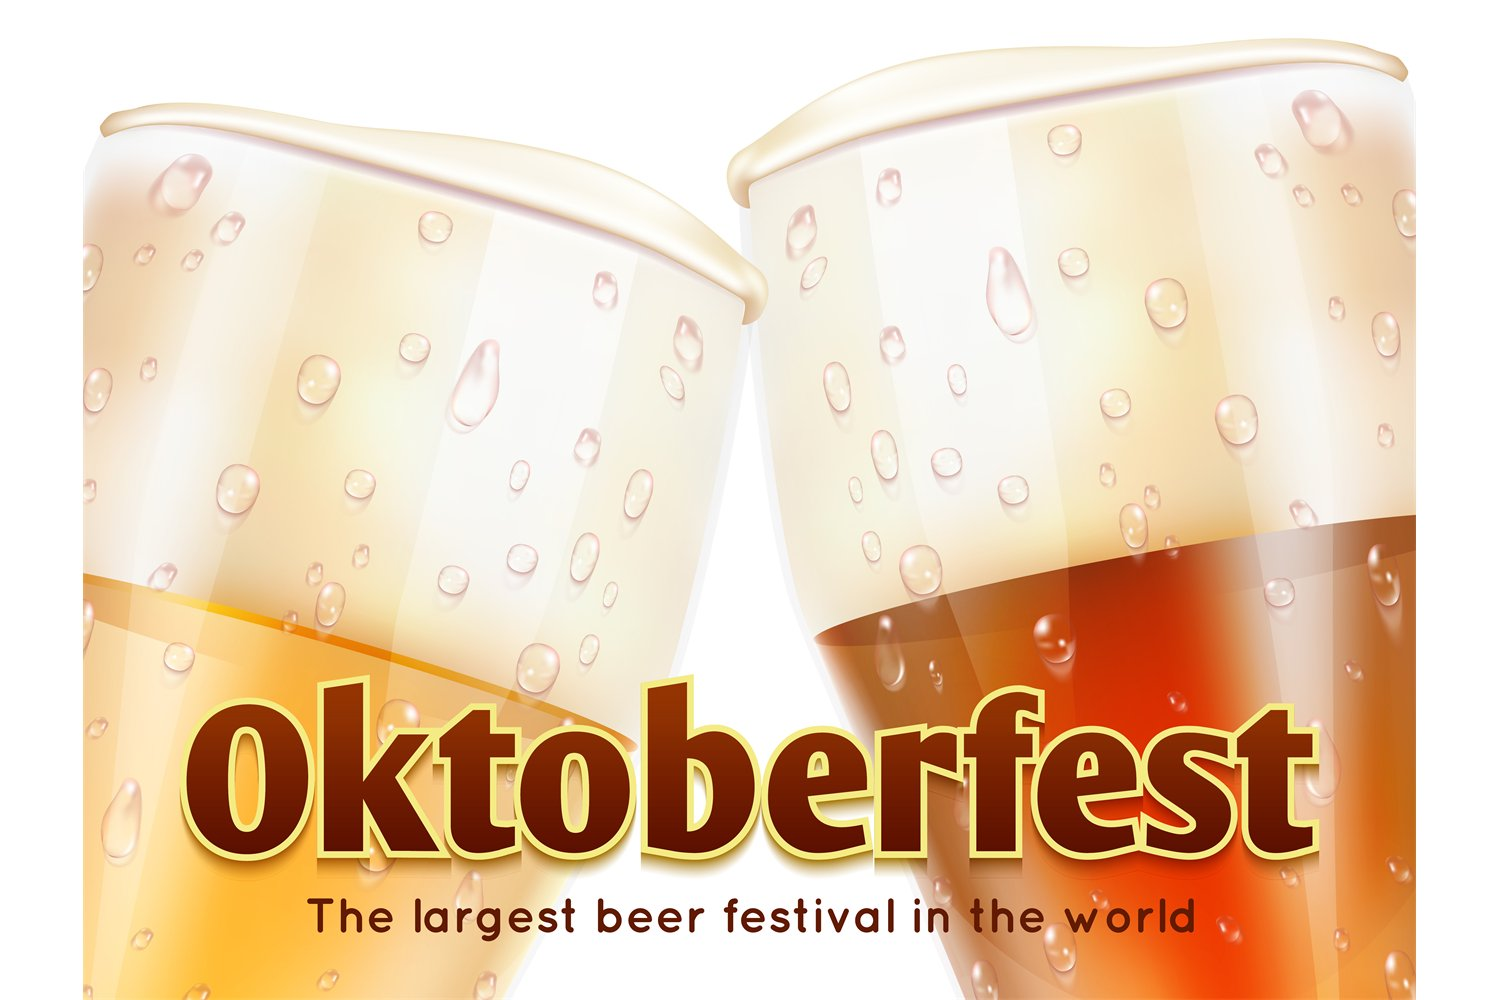 Download Oktoberfest Banner With Realistic Glasses Of Beer Isolated O 928195 Illustrations Design Bundles